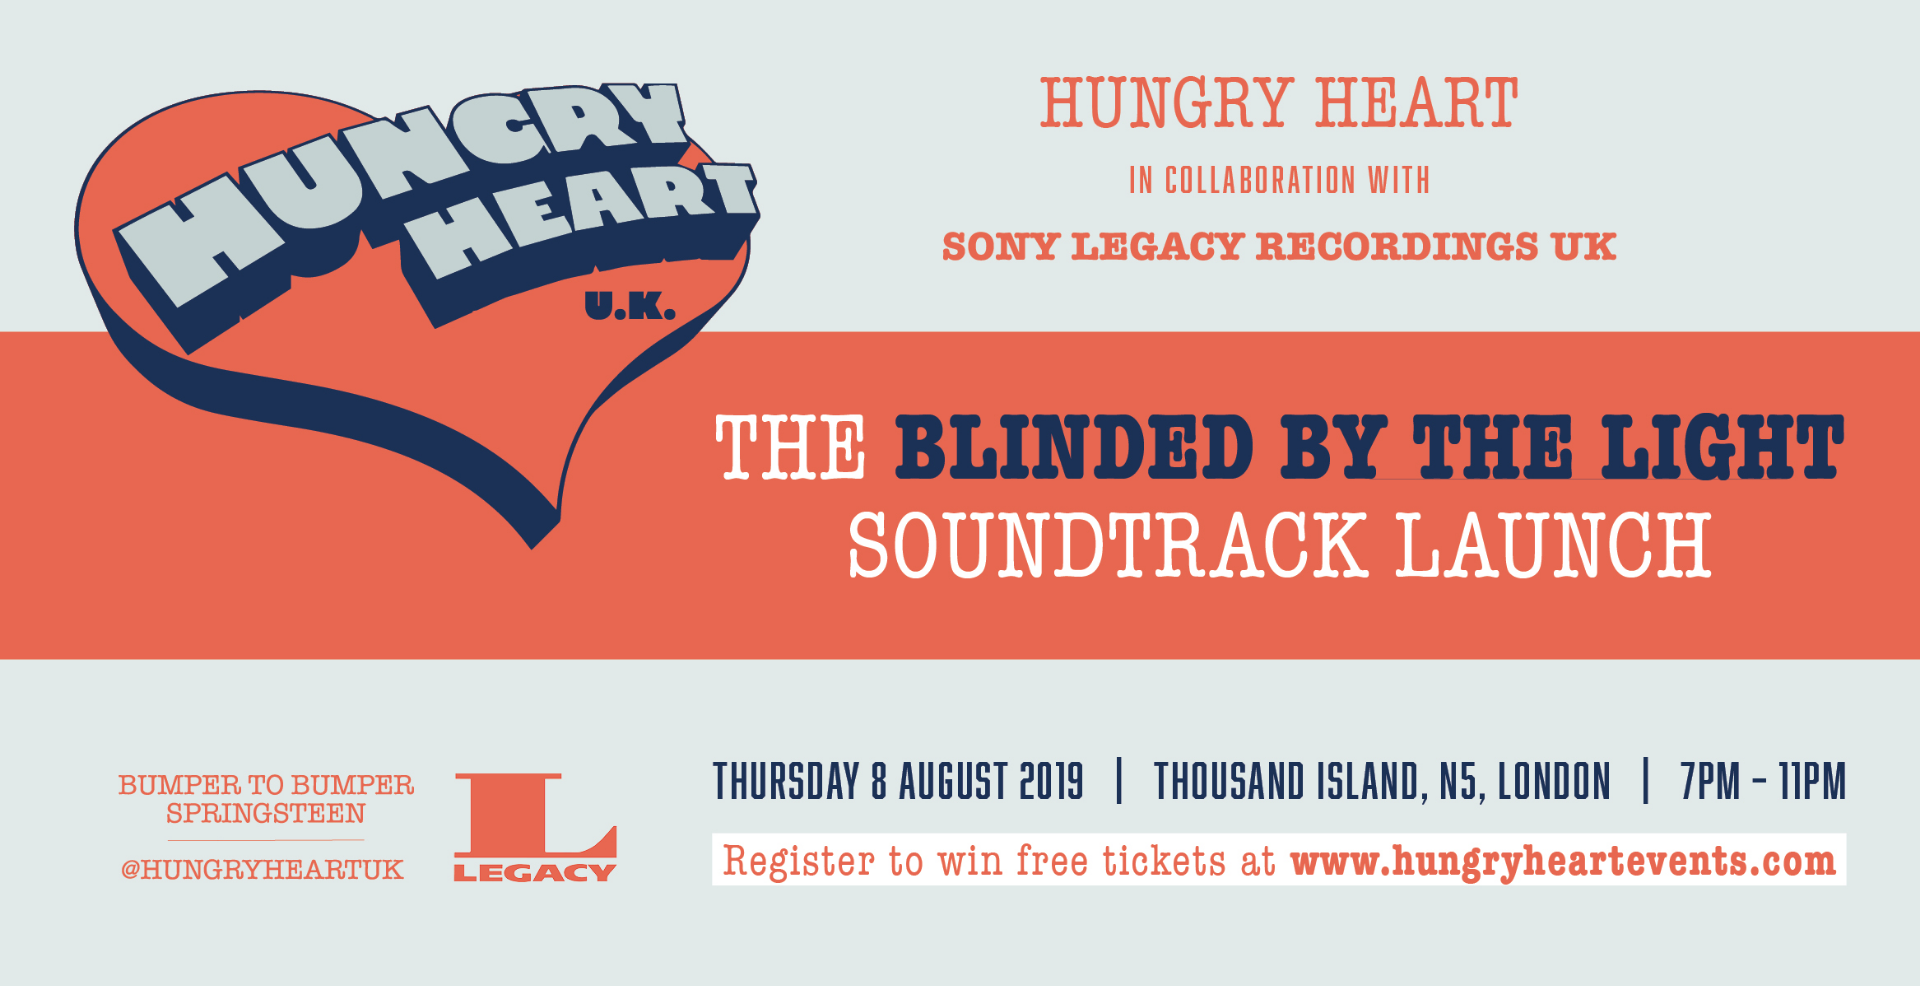 HUNGRY HEART x LEGACY RECORDINGS – BLINDED BY THE LIGHT SOUNDTRACK LAUNCH